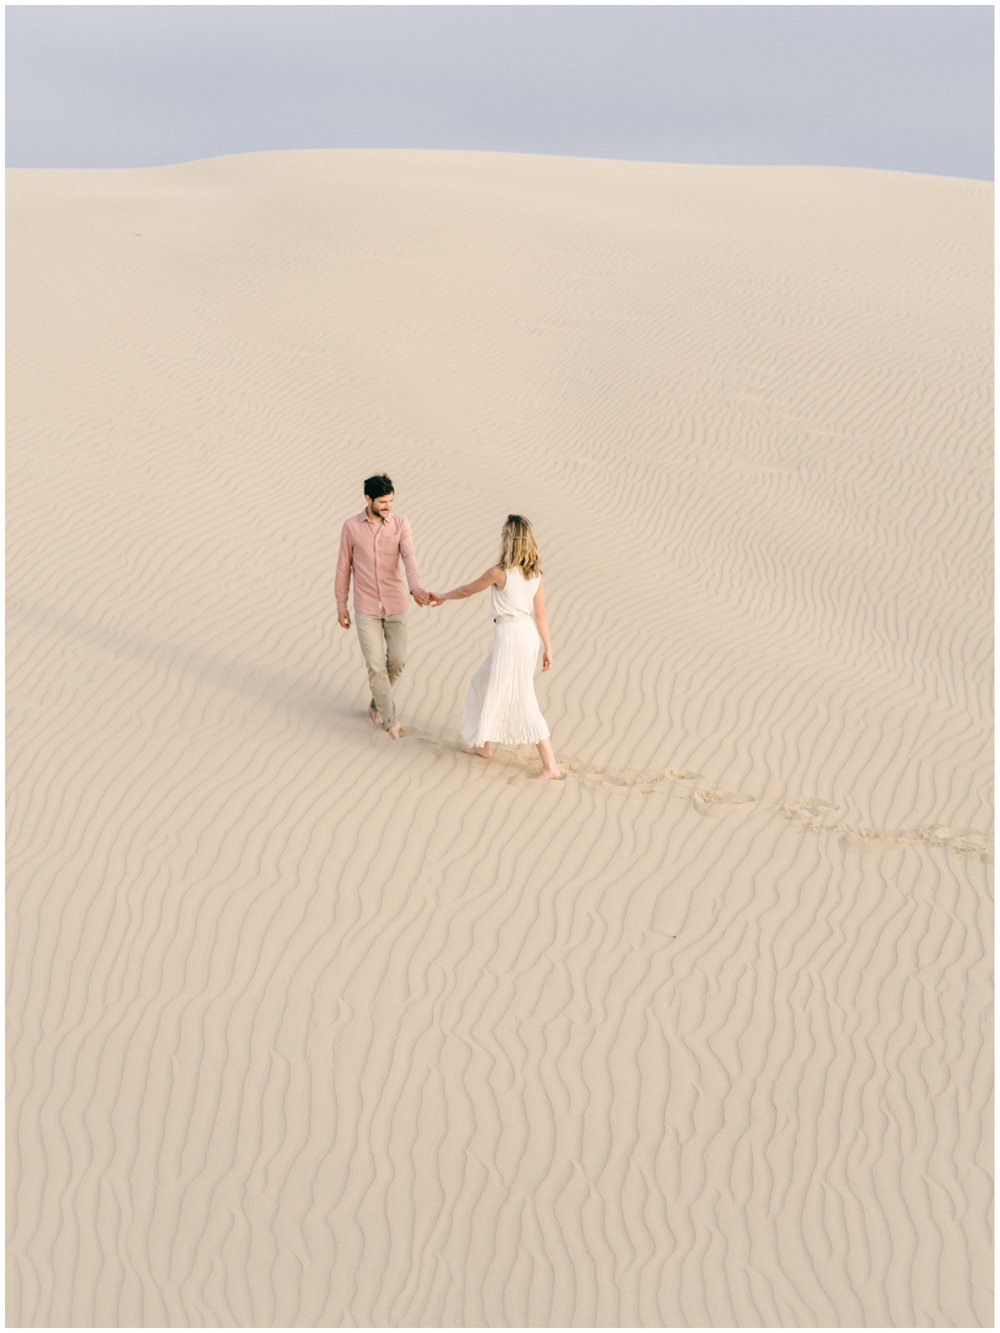 Los_Angeles_Engagement_Session_Wedding_Photographer_Pinnel_Photography-157.jpg